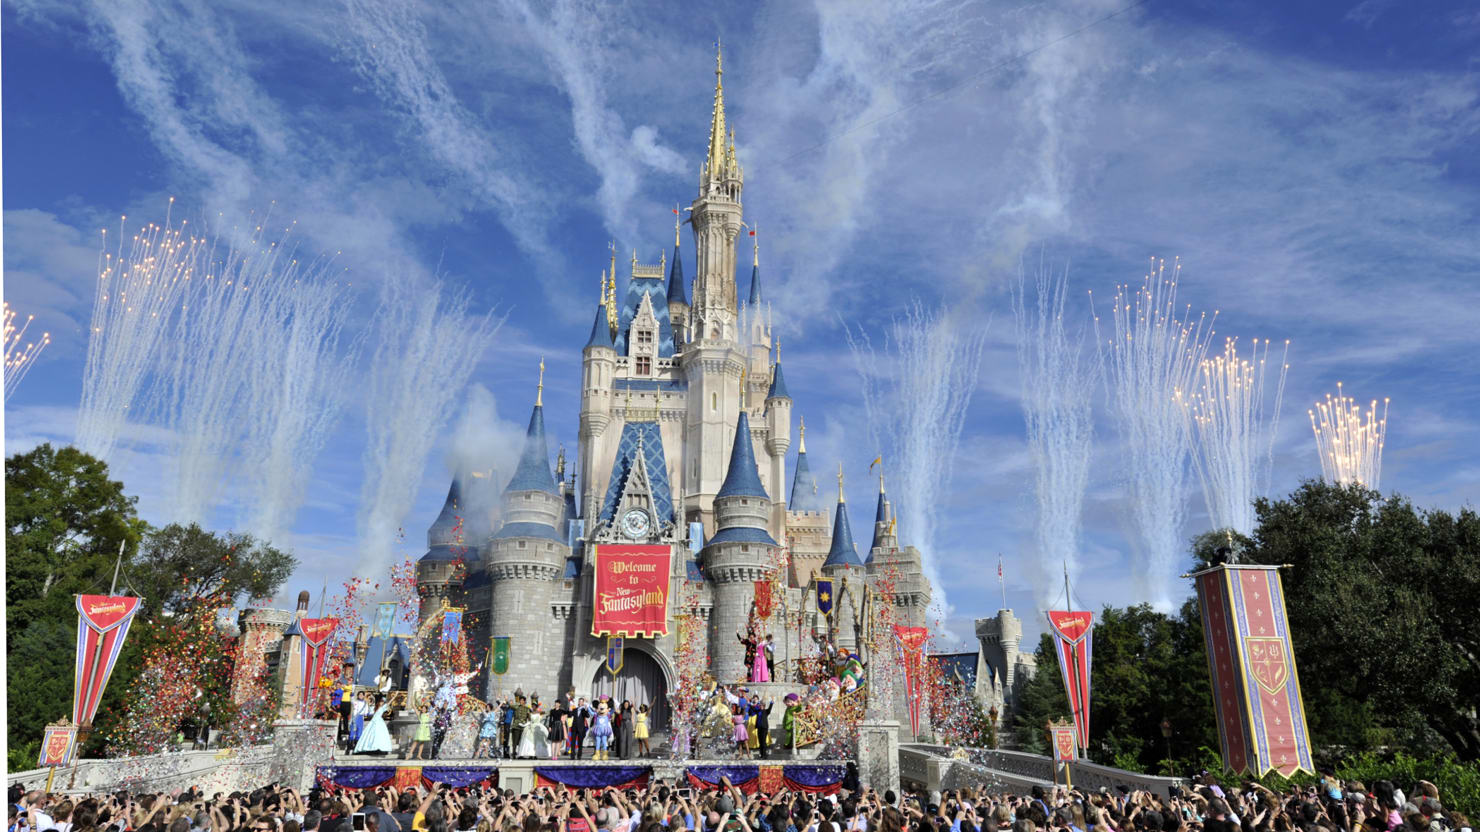 Disney World Employee Tried to Have Sex With 8-Year-Old Girl: Prosecutors